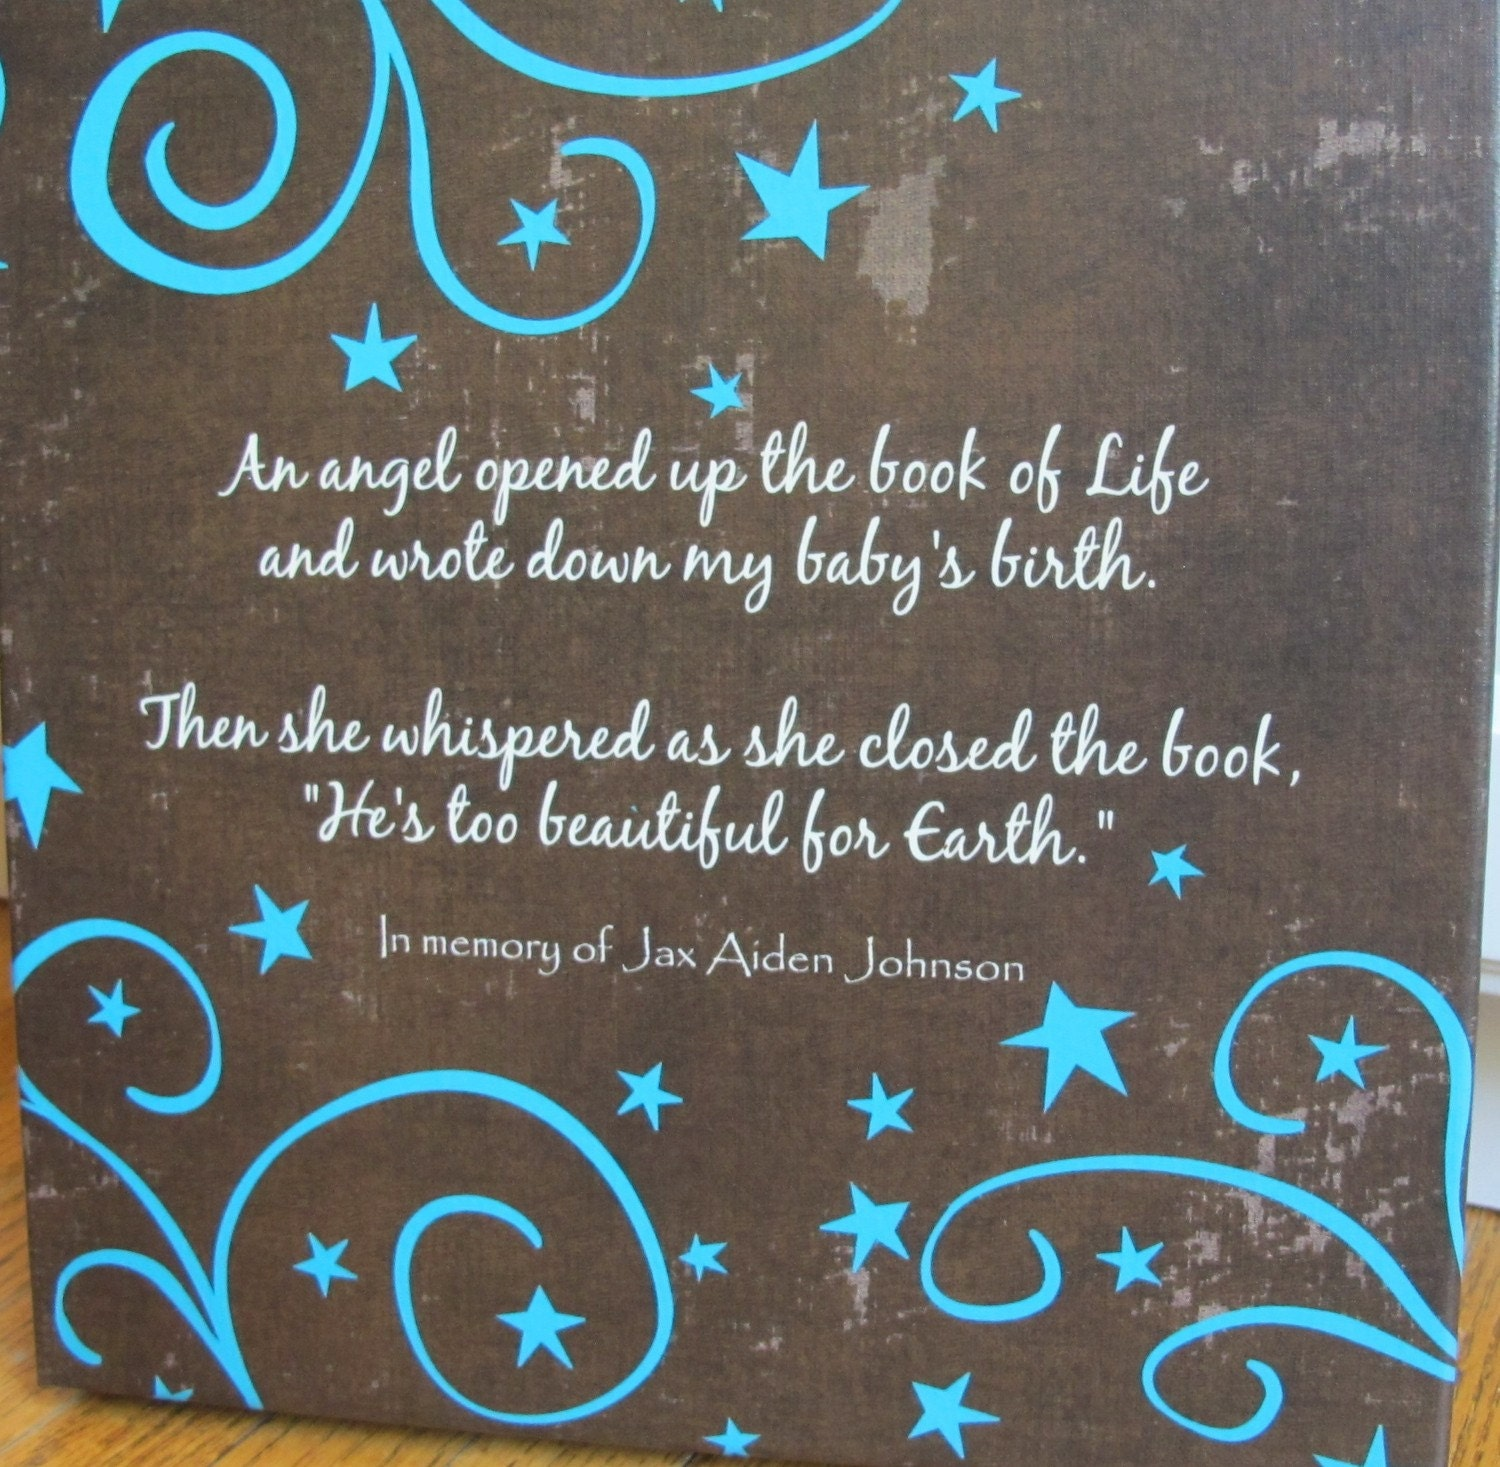 Quotes About Losing A Child Quotes About Friend Losing A Baby Carlymarie Project Heal How